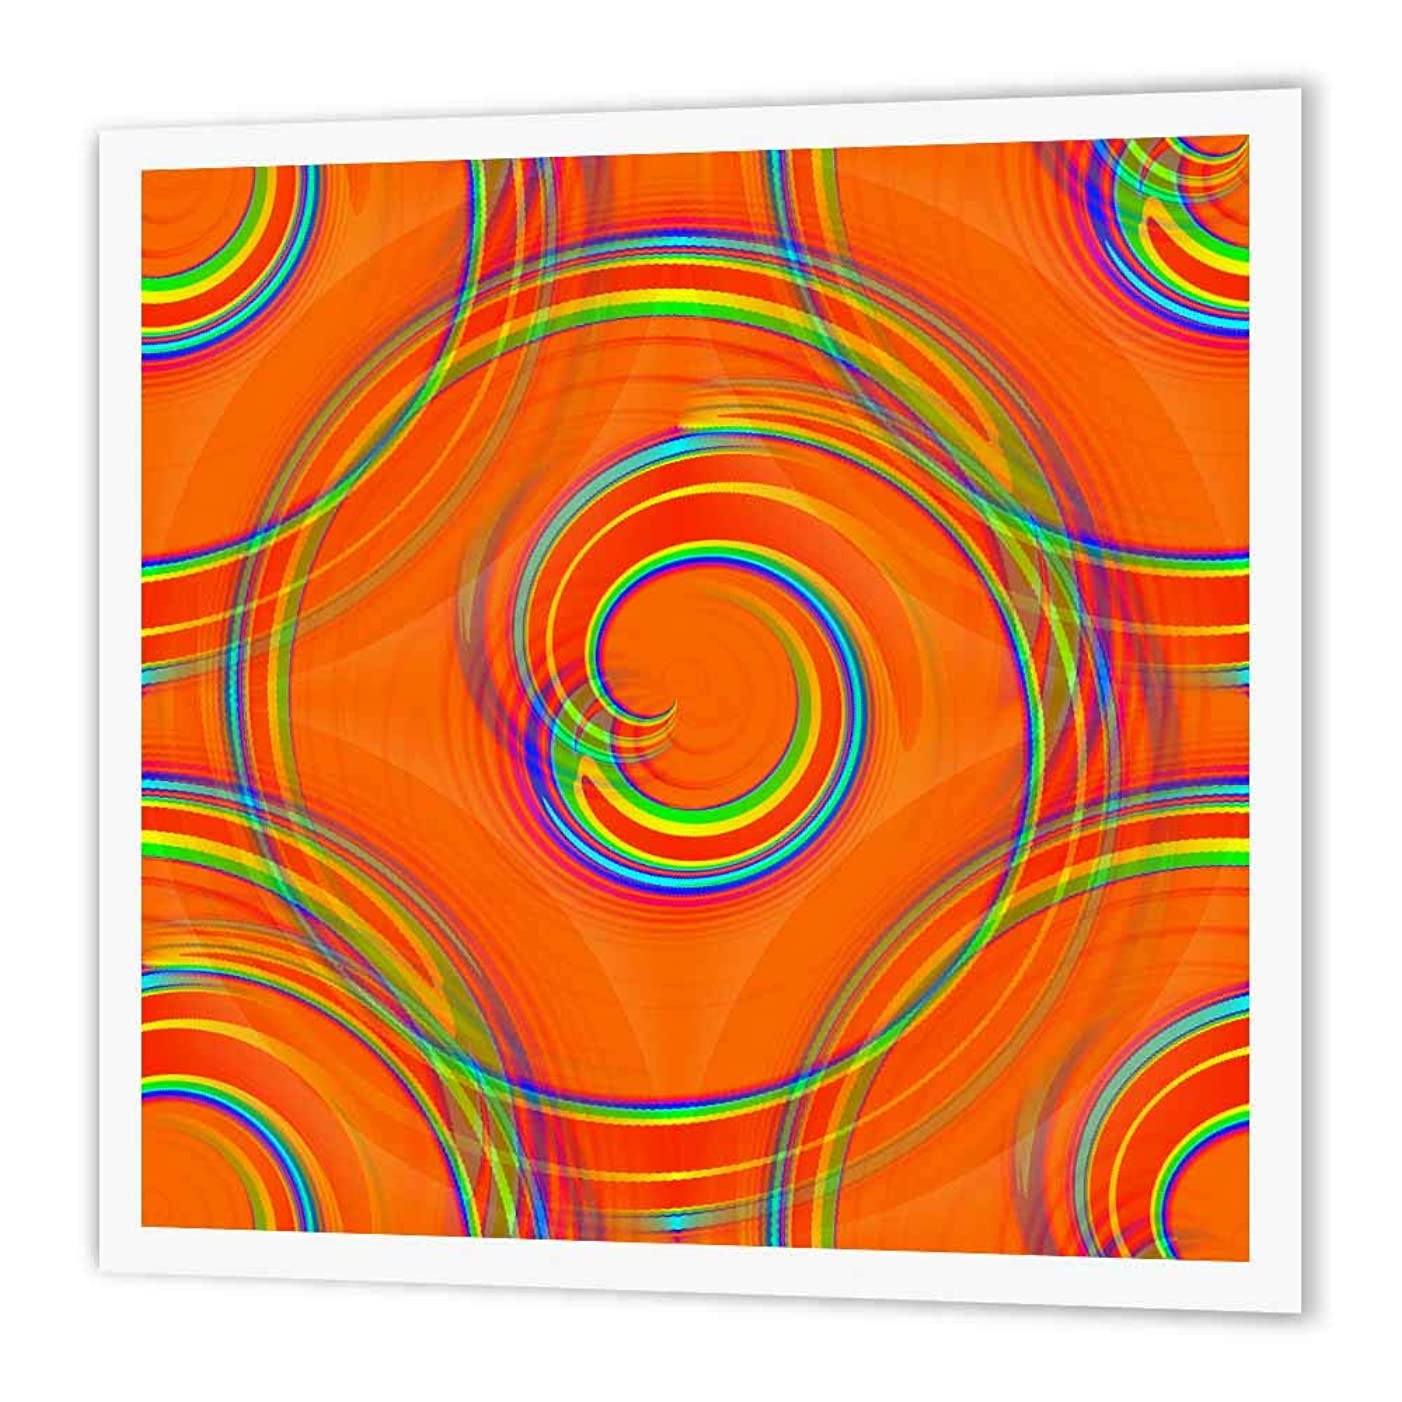 3dRose ht_180976_3 Orange Twirl Digital Abstract by Angelandspot-Iron on Heat Transfer Paper for White Material, 10 by 10-Inch